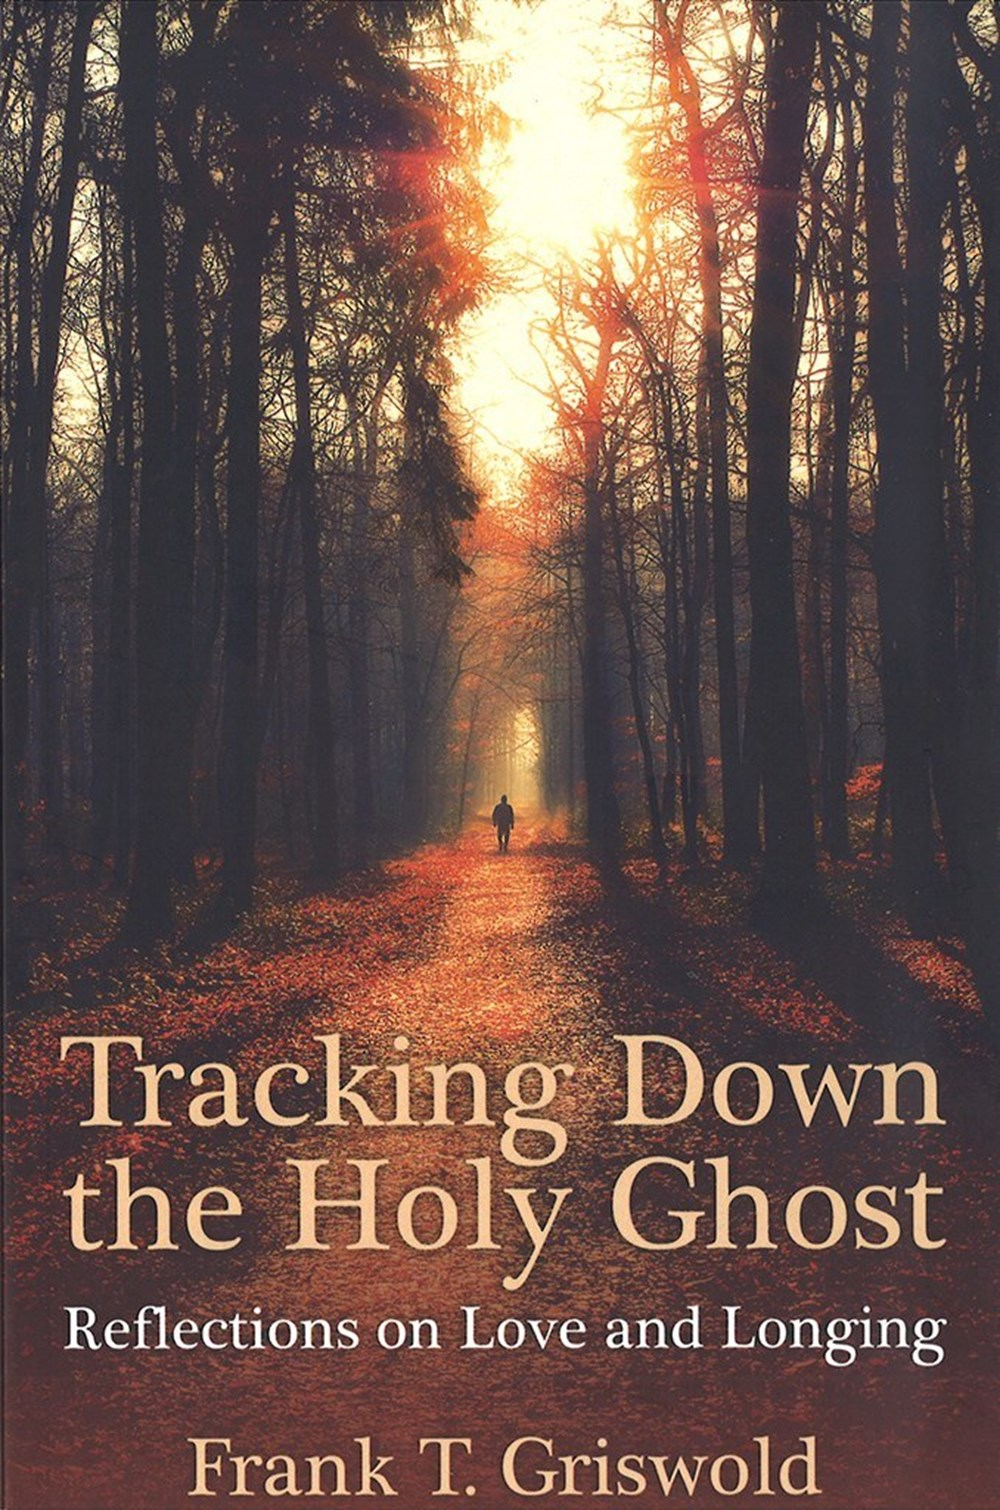 Tracking Down the Holy Ghost: Reflections on Love and Longing